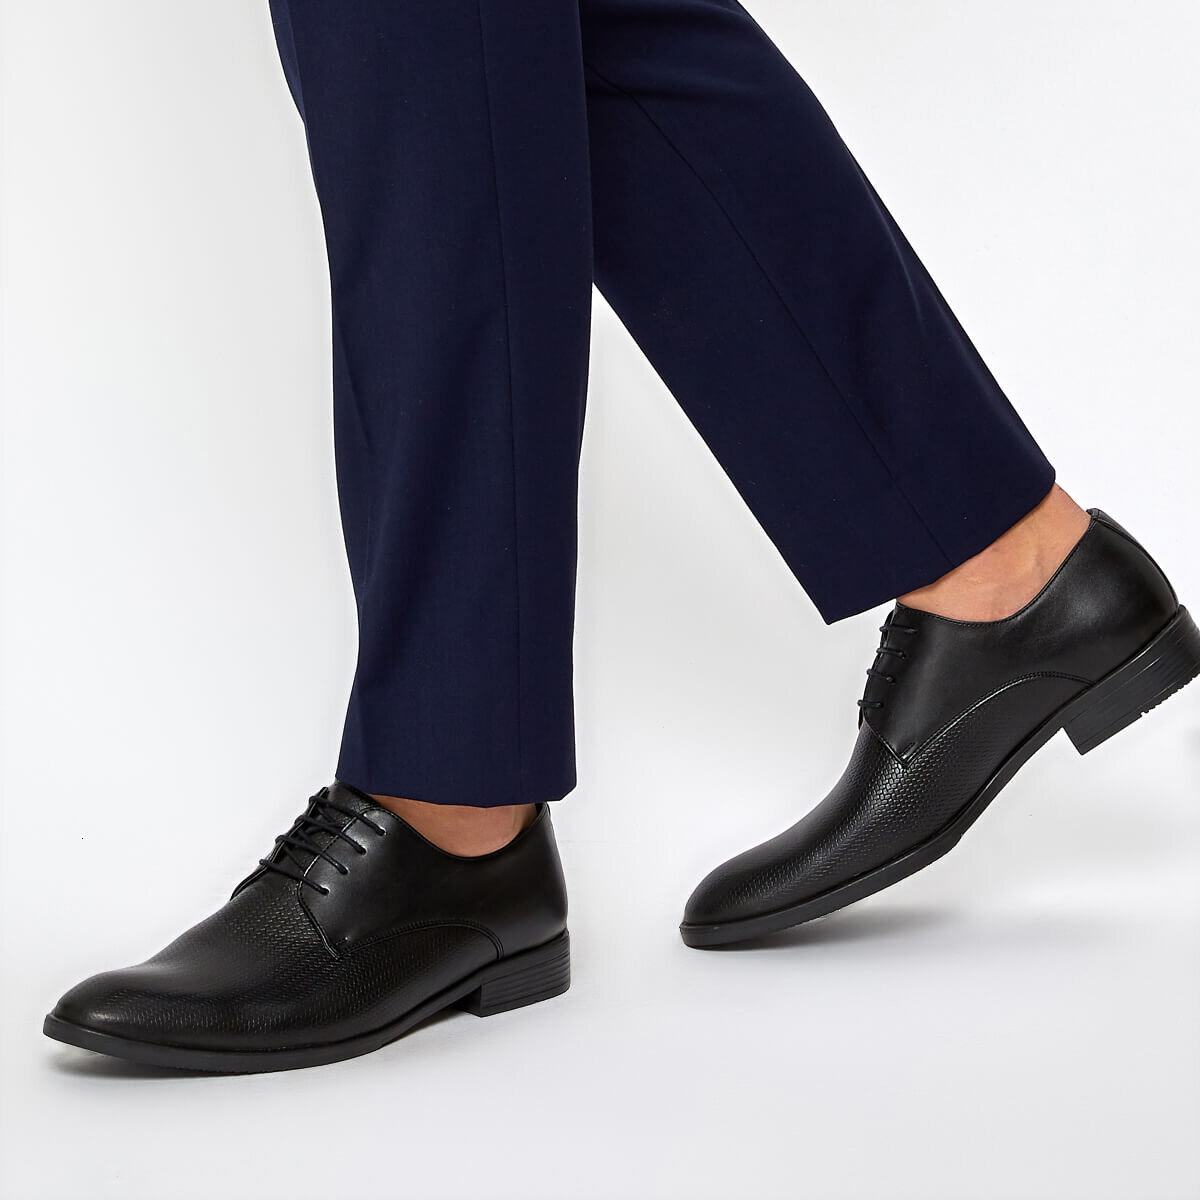 FLO 113-2 Black Men 'S Classic Shoes DOWN TOWN